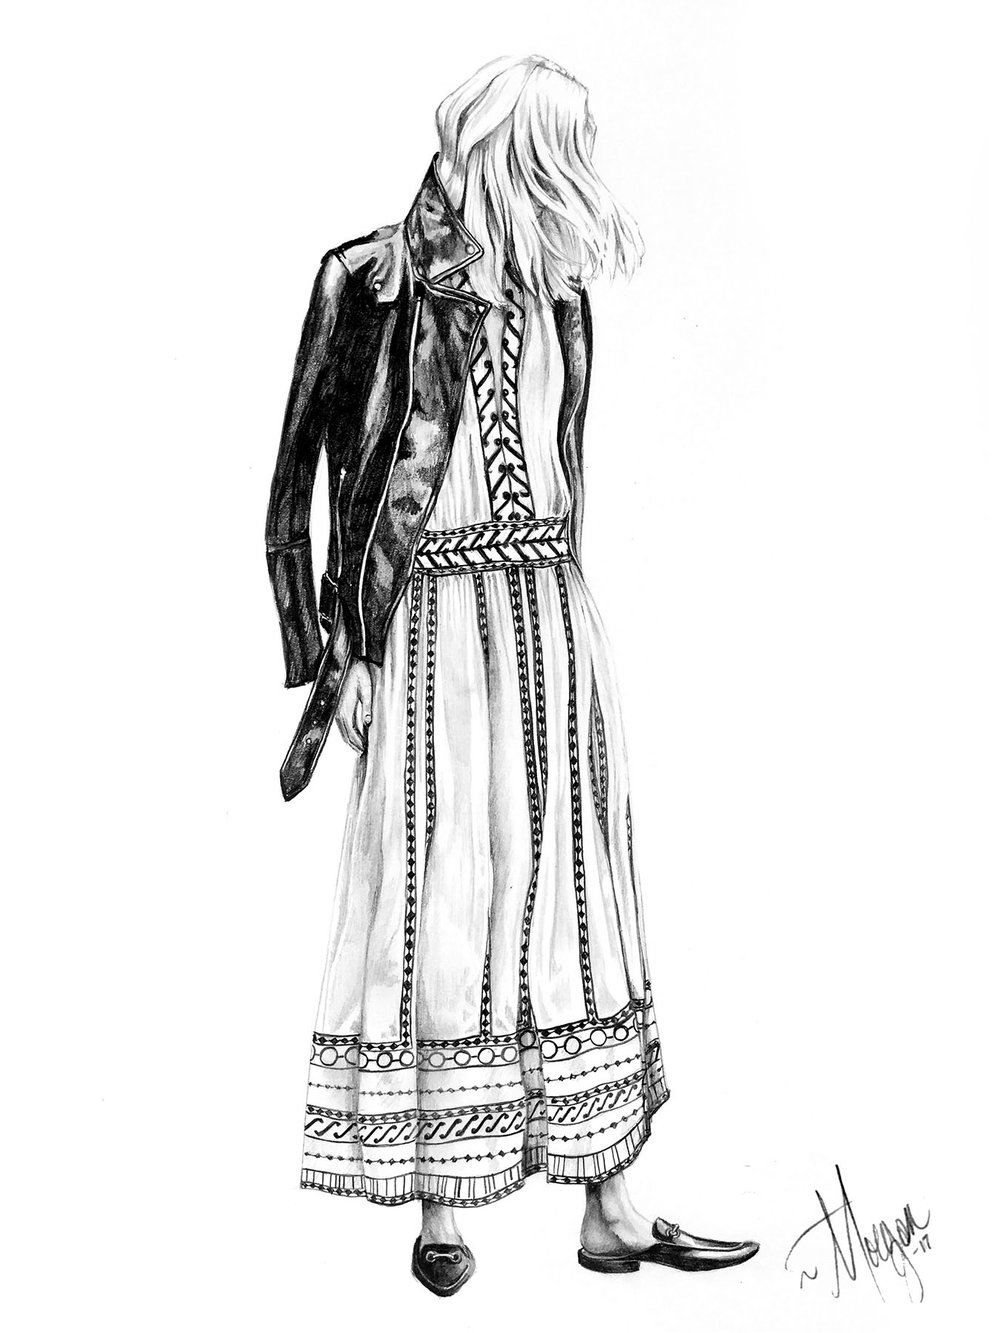 maxi-dress-illustration-morgan-swank-studio.jpg